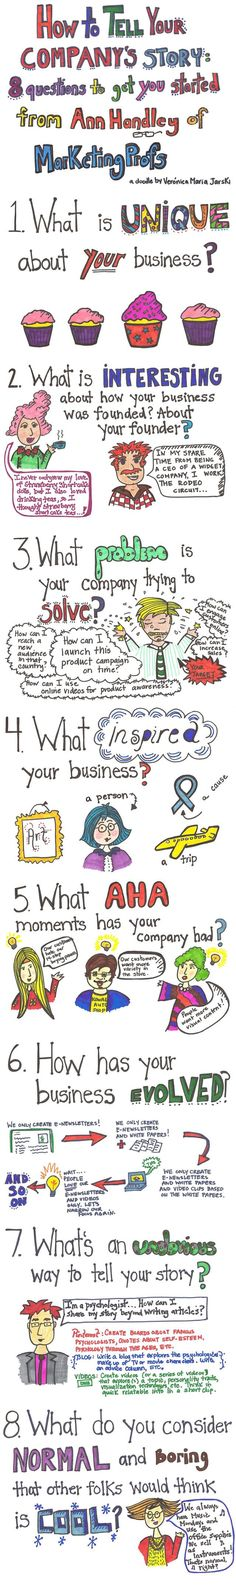 Infographic - Infographic Design - How to Tell Your Company's Story: Eight Questions to Get You Started. Infographic Design : – Picture : – Description How to Tell Your Company's Story: Eight Questions to Get You Started. -Read More – Marketing Digital, Marketing Online, Business Marketing, Internet Marketing, Social Media Marketing, Content Marketing, Marketing Models, Business Advice, Business Planning